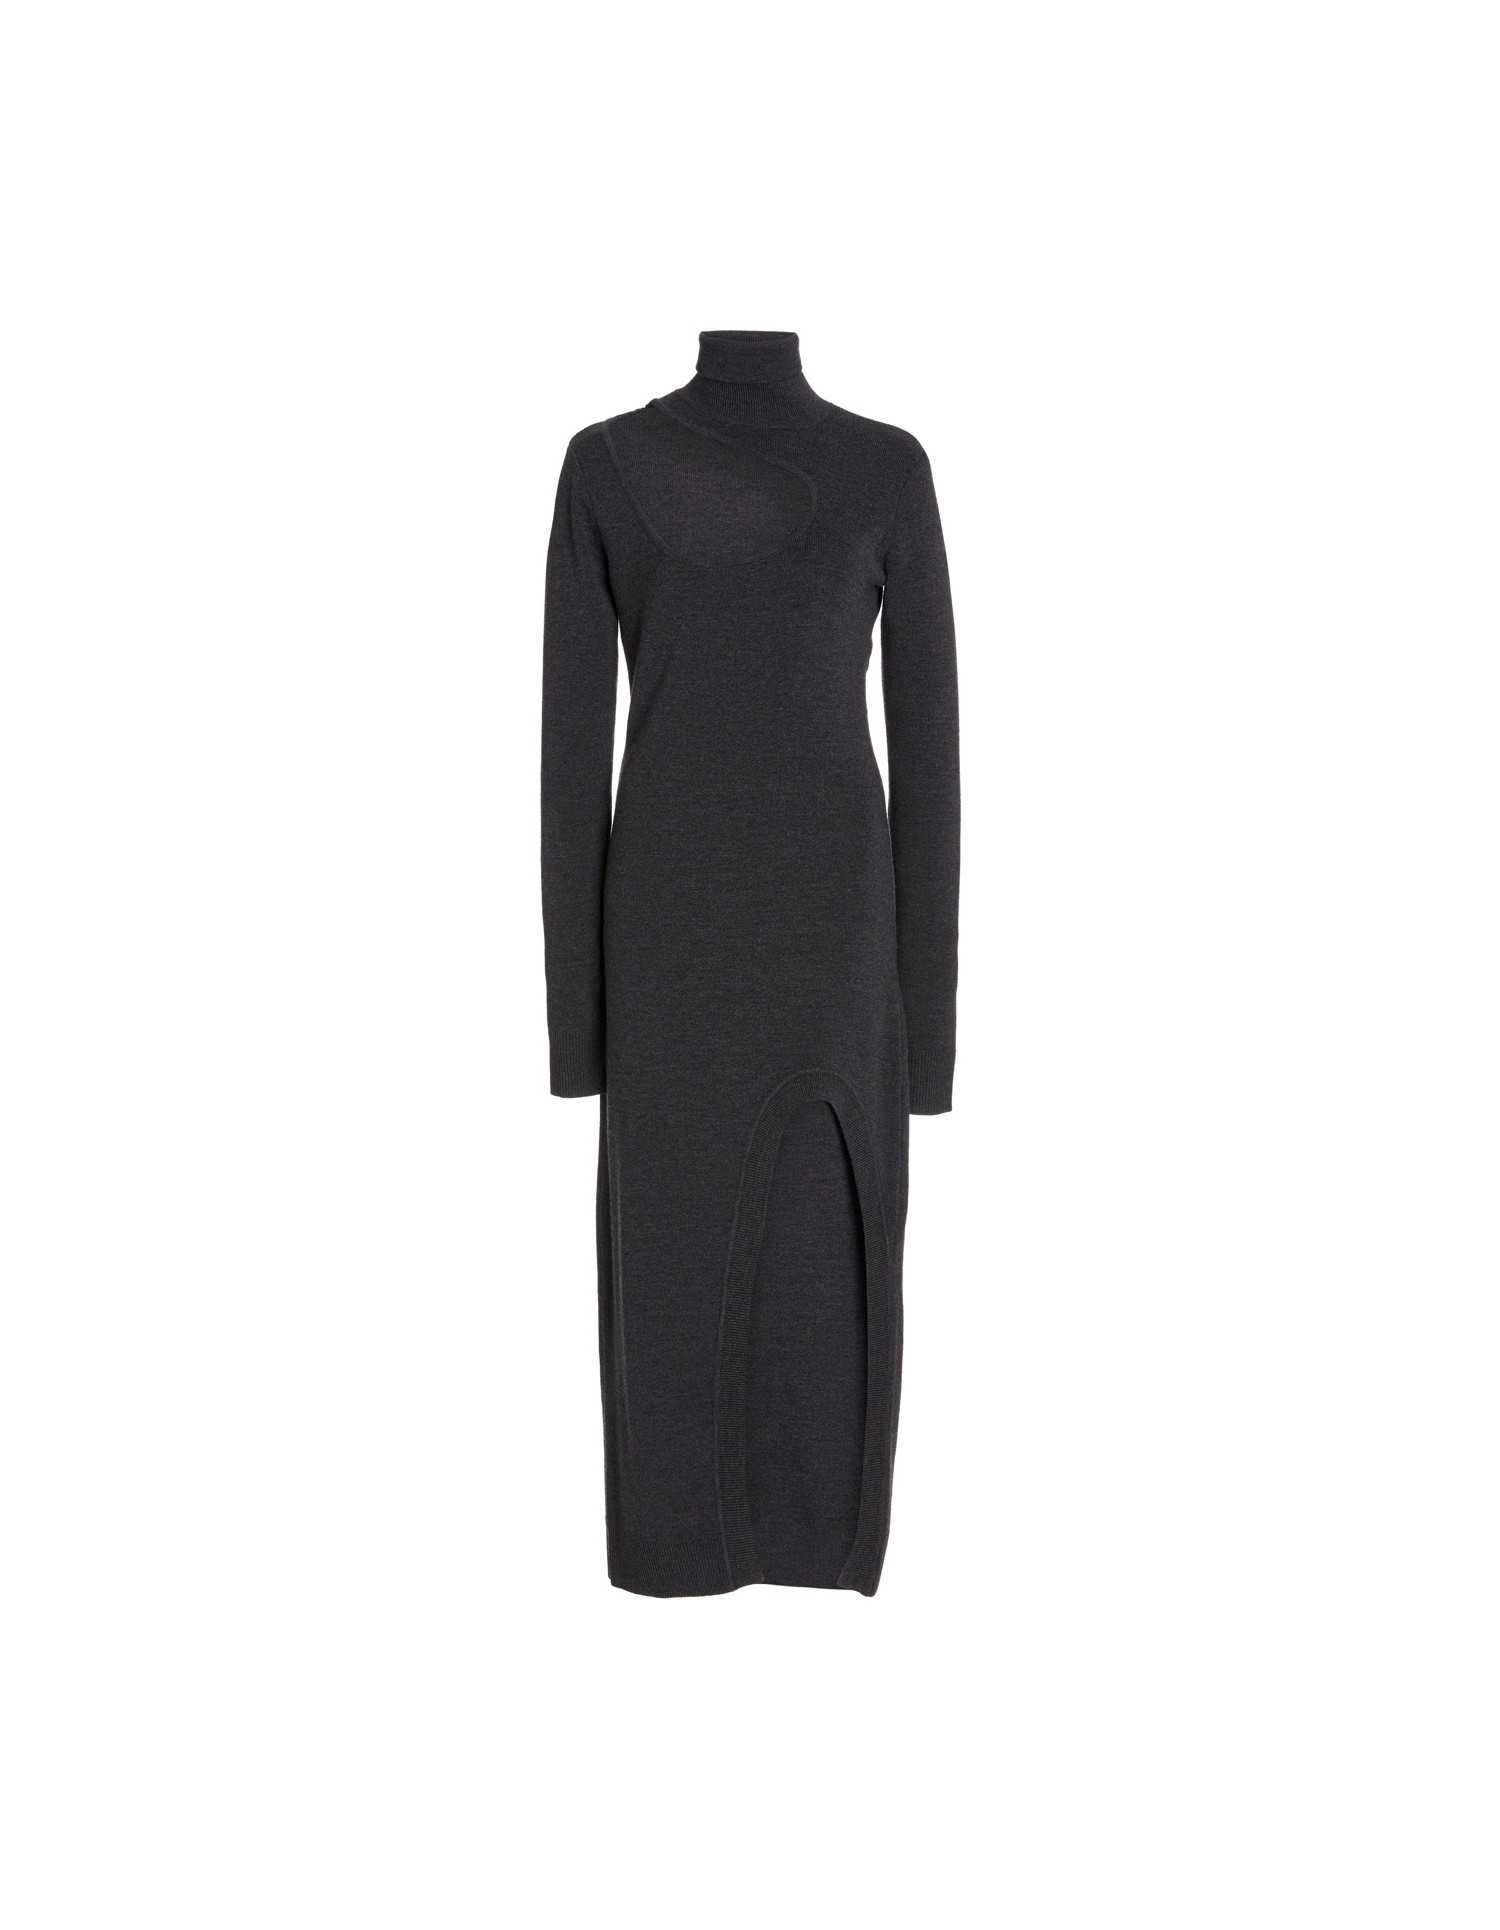 MONSE Kidney Bean Cut Out Knit Dress in Dark Grey on Model Front View